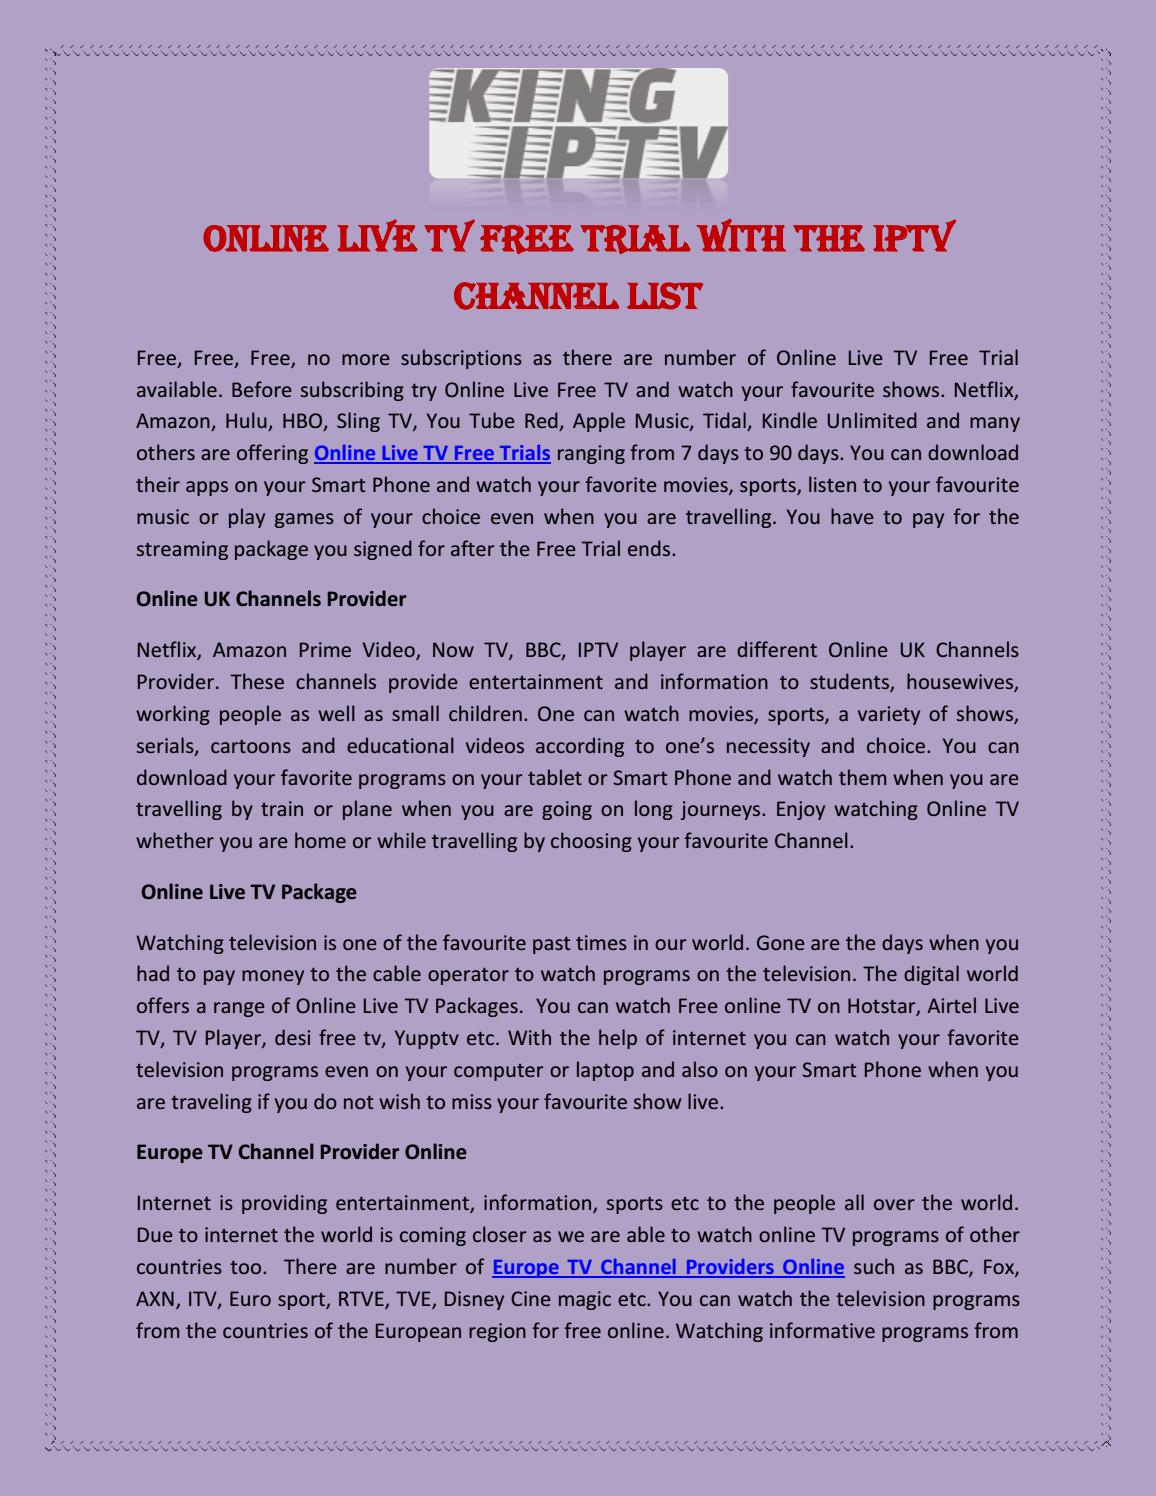 Online Live TV Free Trial with the IPTV Channel Lisl by KING